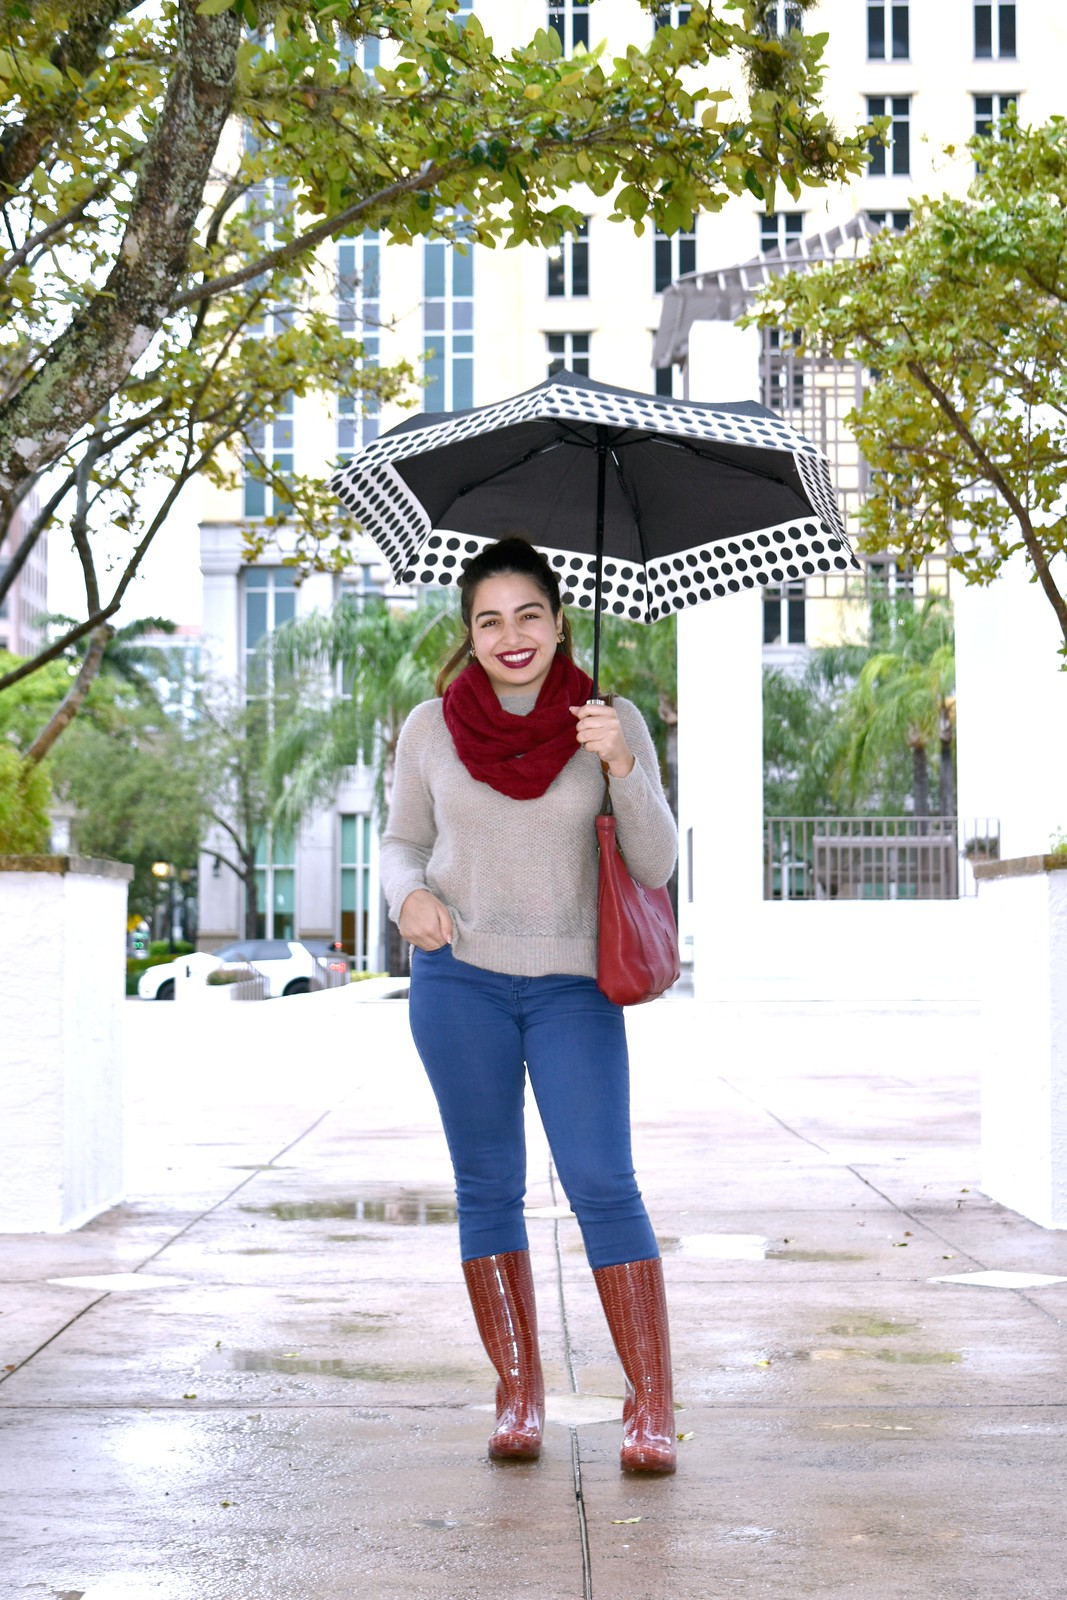 ShedRain polka dot umbrella